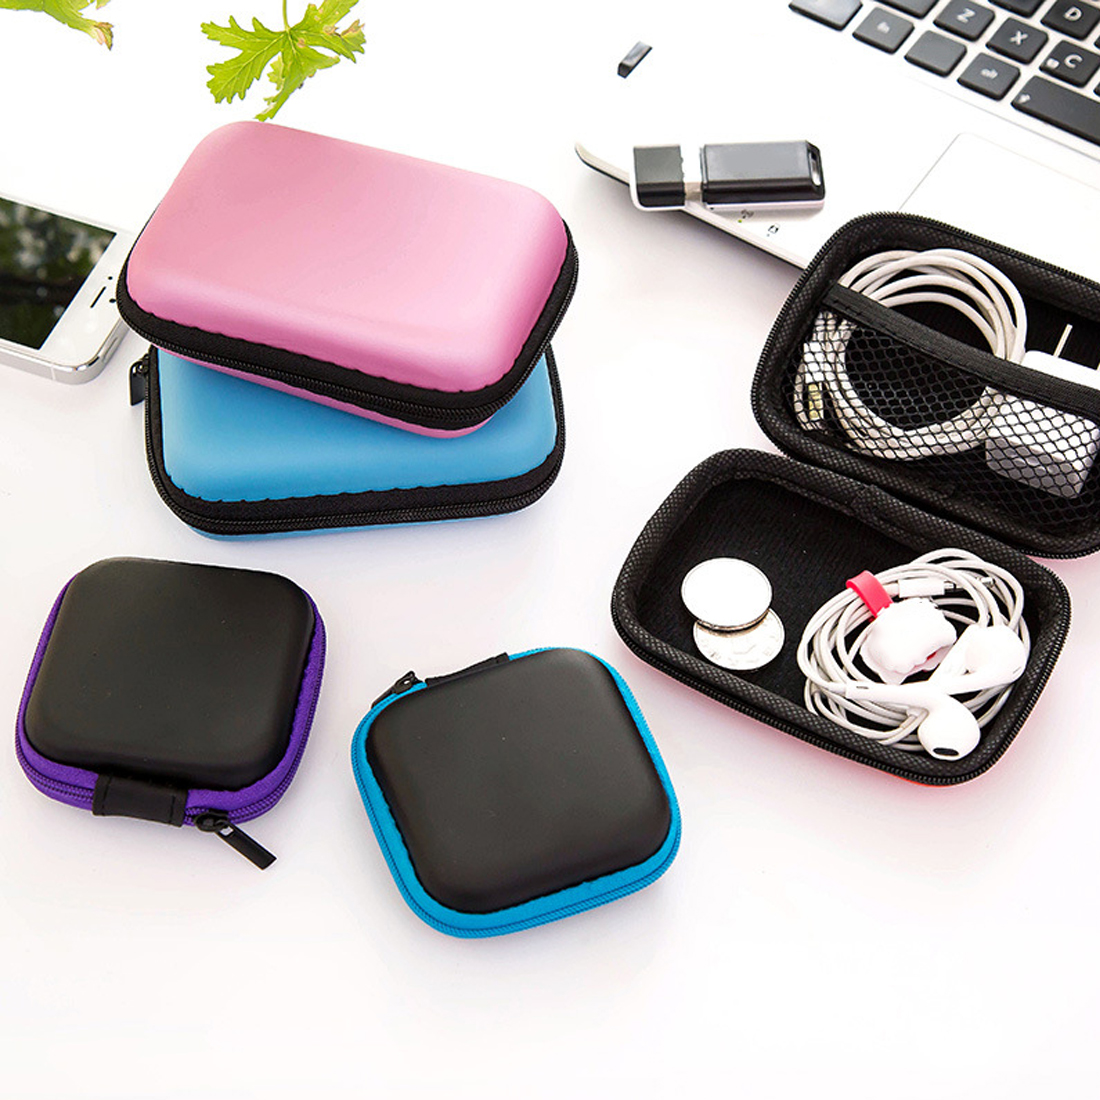 Portable 3Shapes Square Earphone Wire Organizer Box Data Line Cables Storage Box Case Container Coin Headphone Protective Box